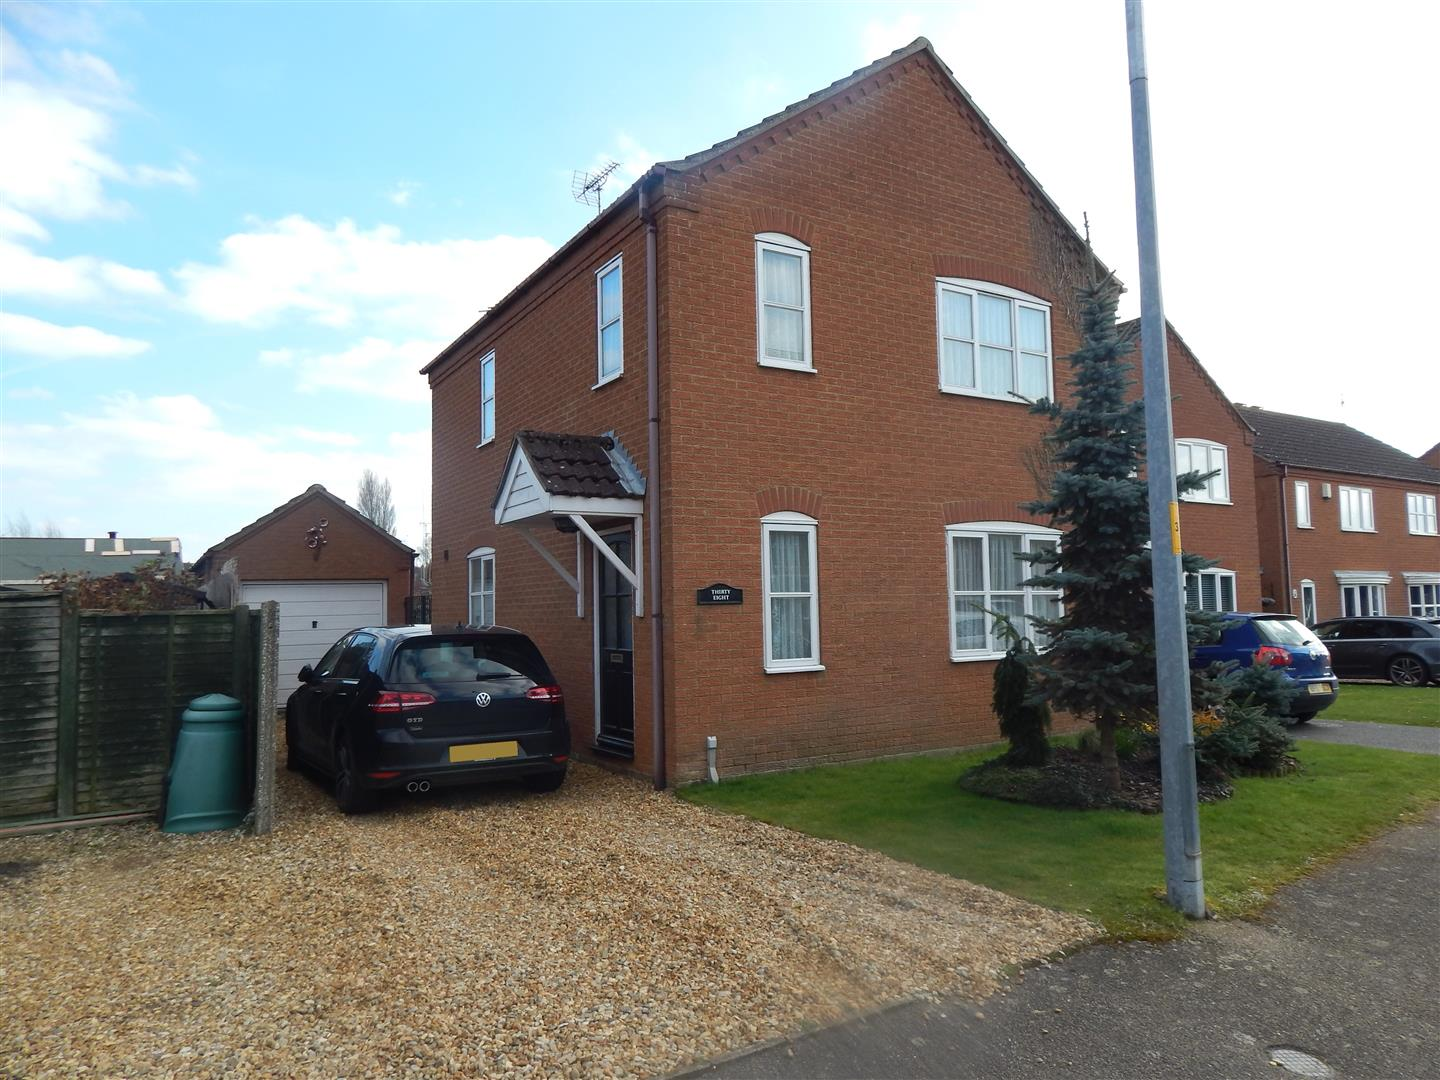 3 bed detached house for sale in King's Lynn, PE31 6XY, PE31